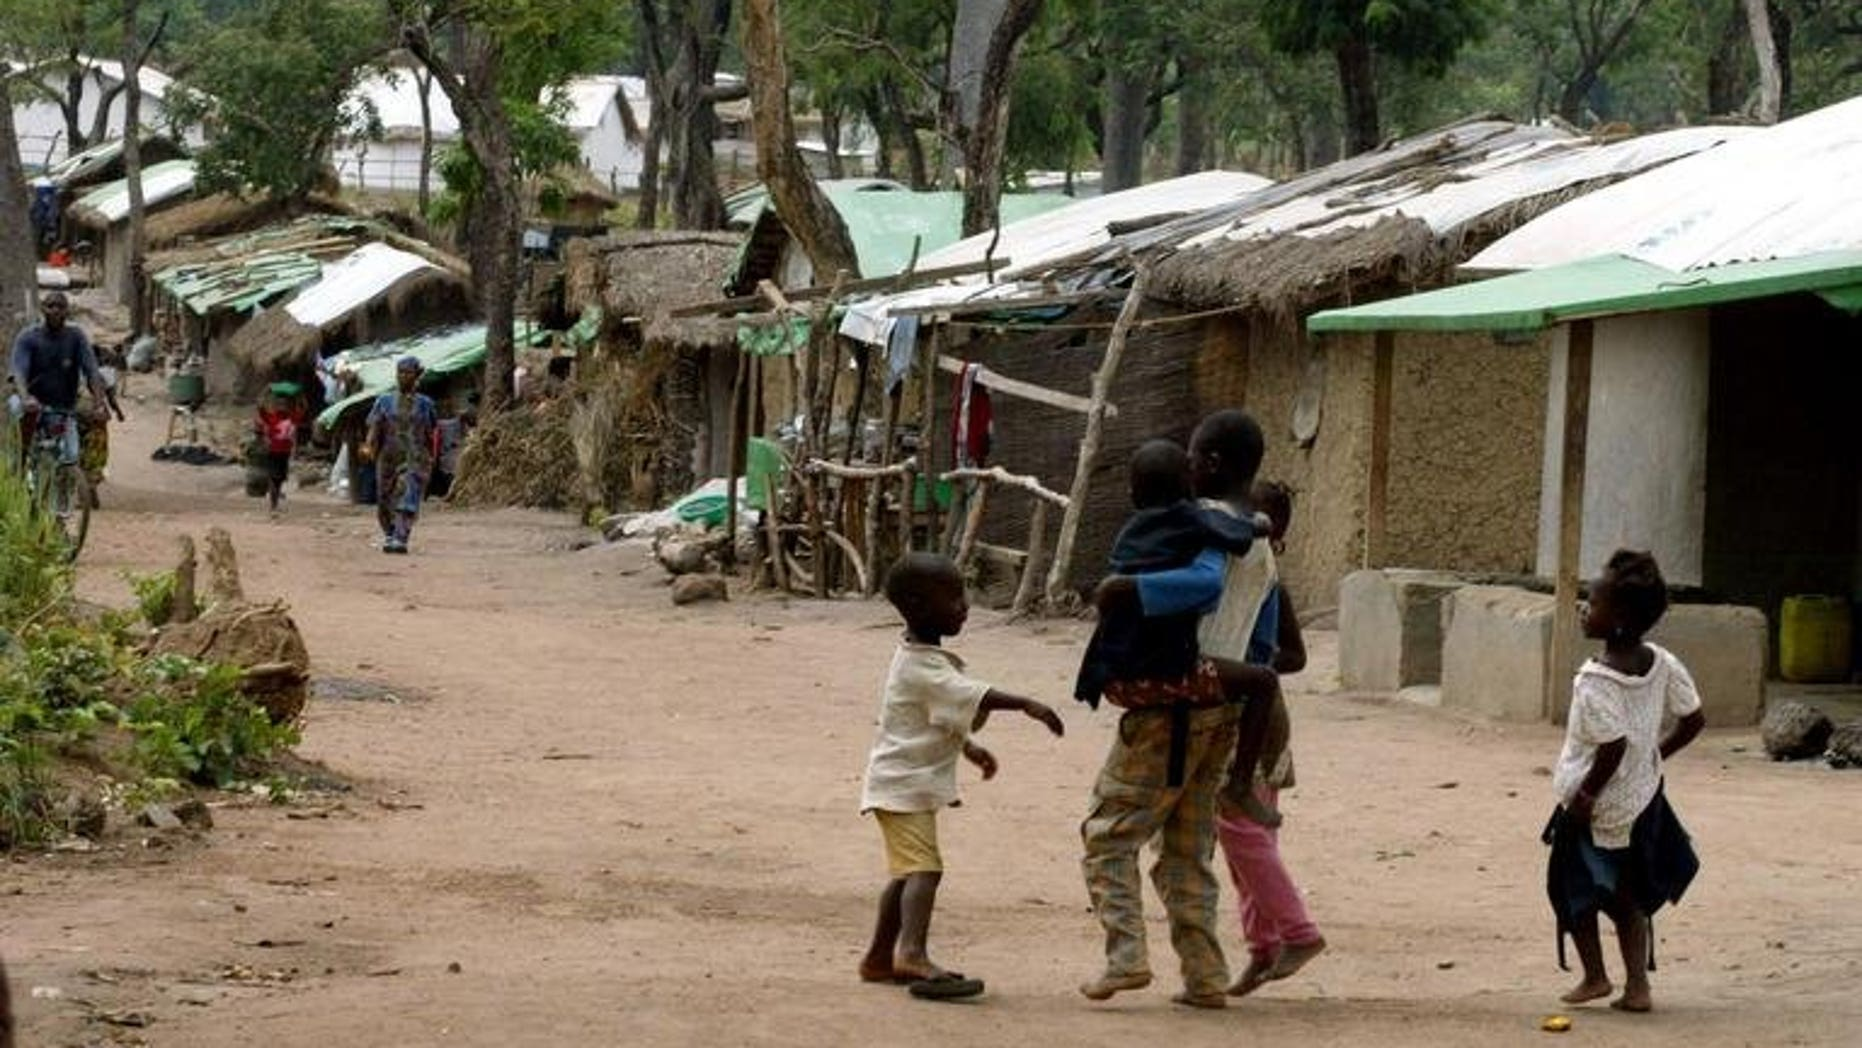 A Kuntaya refugee camp on May 5, 2002, some 760 kilometres southeast of Conakry. Volunteers continued the grim task of collecting bodies from the streets in southern Guinea on Thursday after ethnic clashes which left dozens burned alive or hacked to death with machetes.